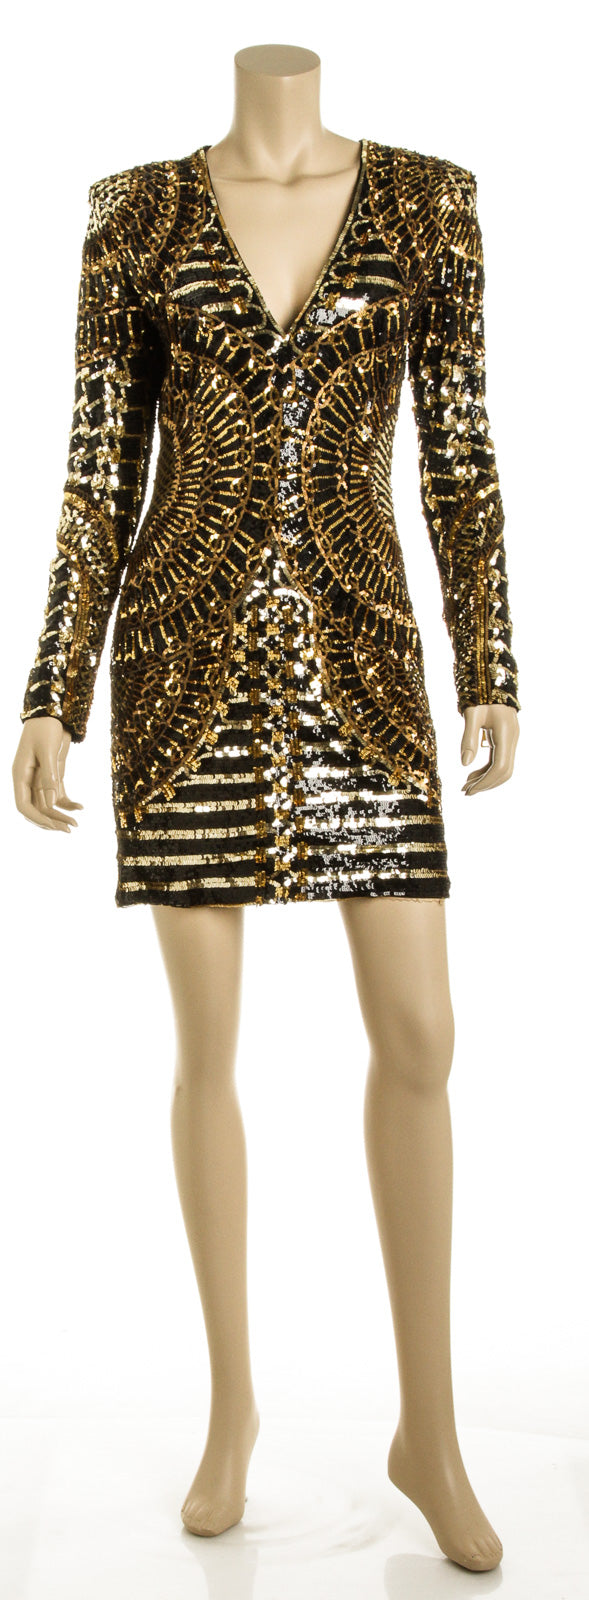 Balmain Black and Gold Sequin Dress (Size 38)